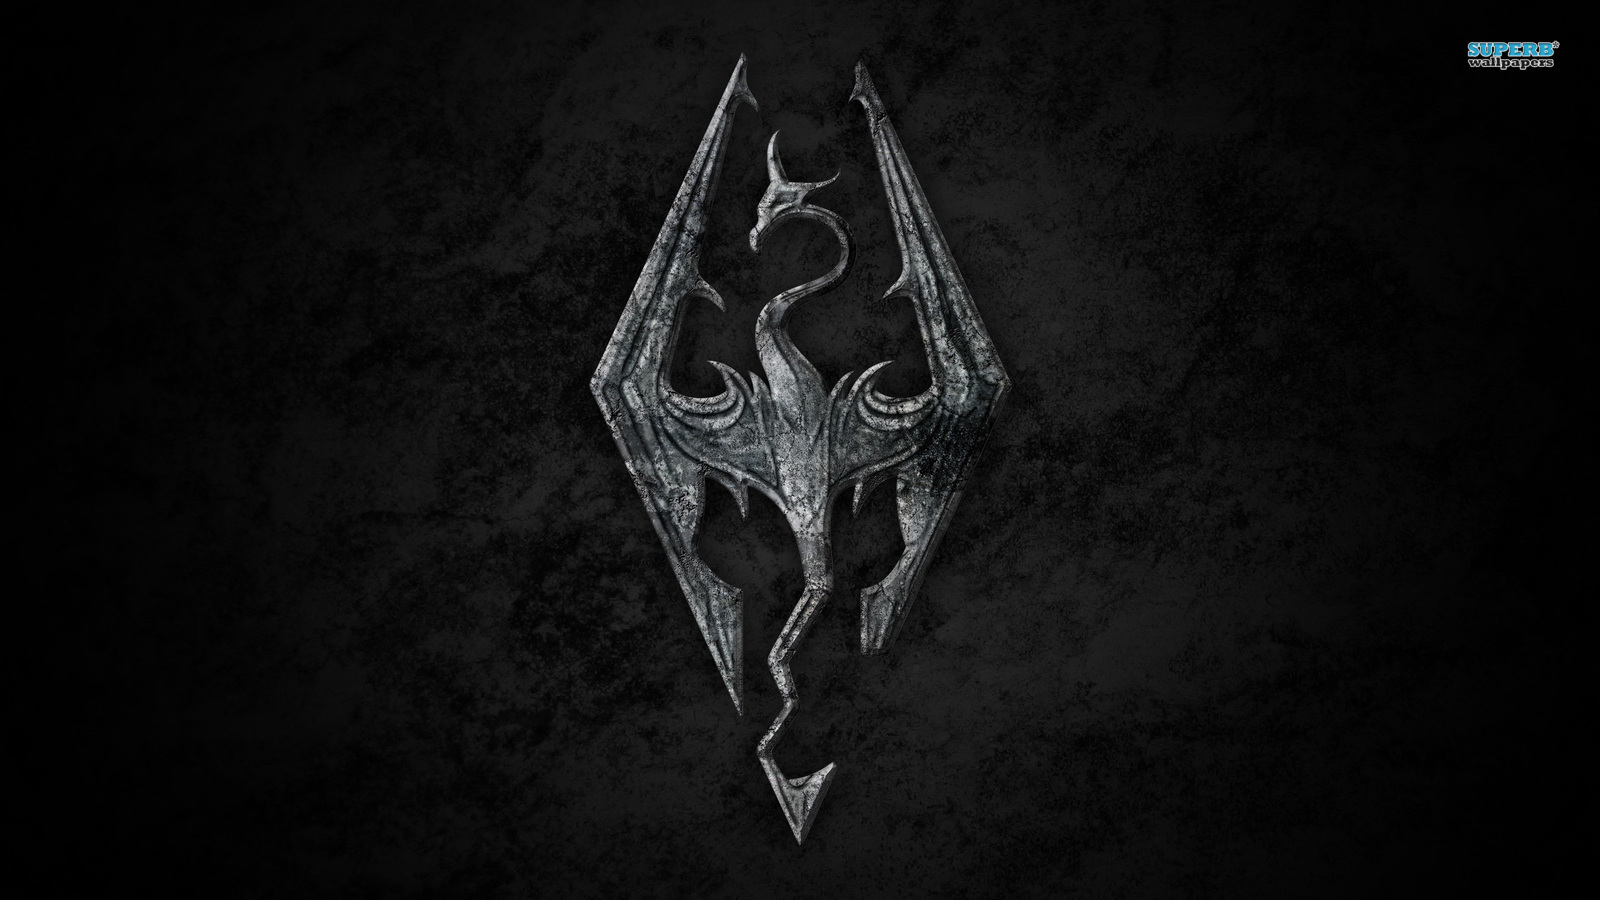 Elder Scrolls V Skyrim Images Skyrim Hd Wallpaper And Background